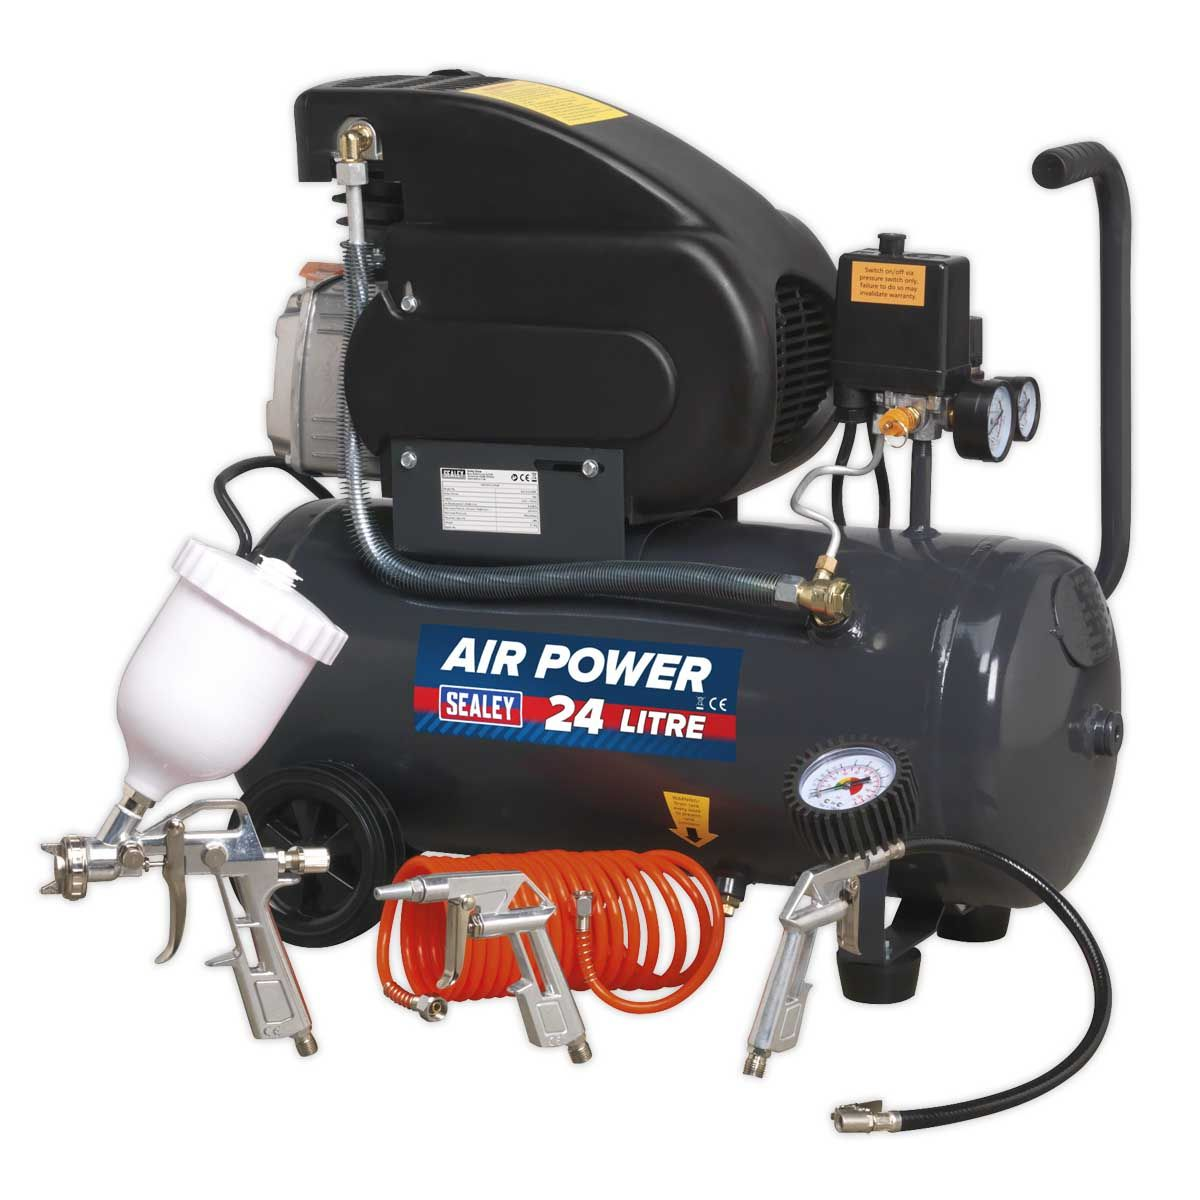 Sealey Compressor 24L Direct Drive 2hp with 4pc Air Accessory Kit